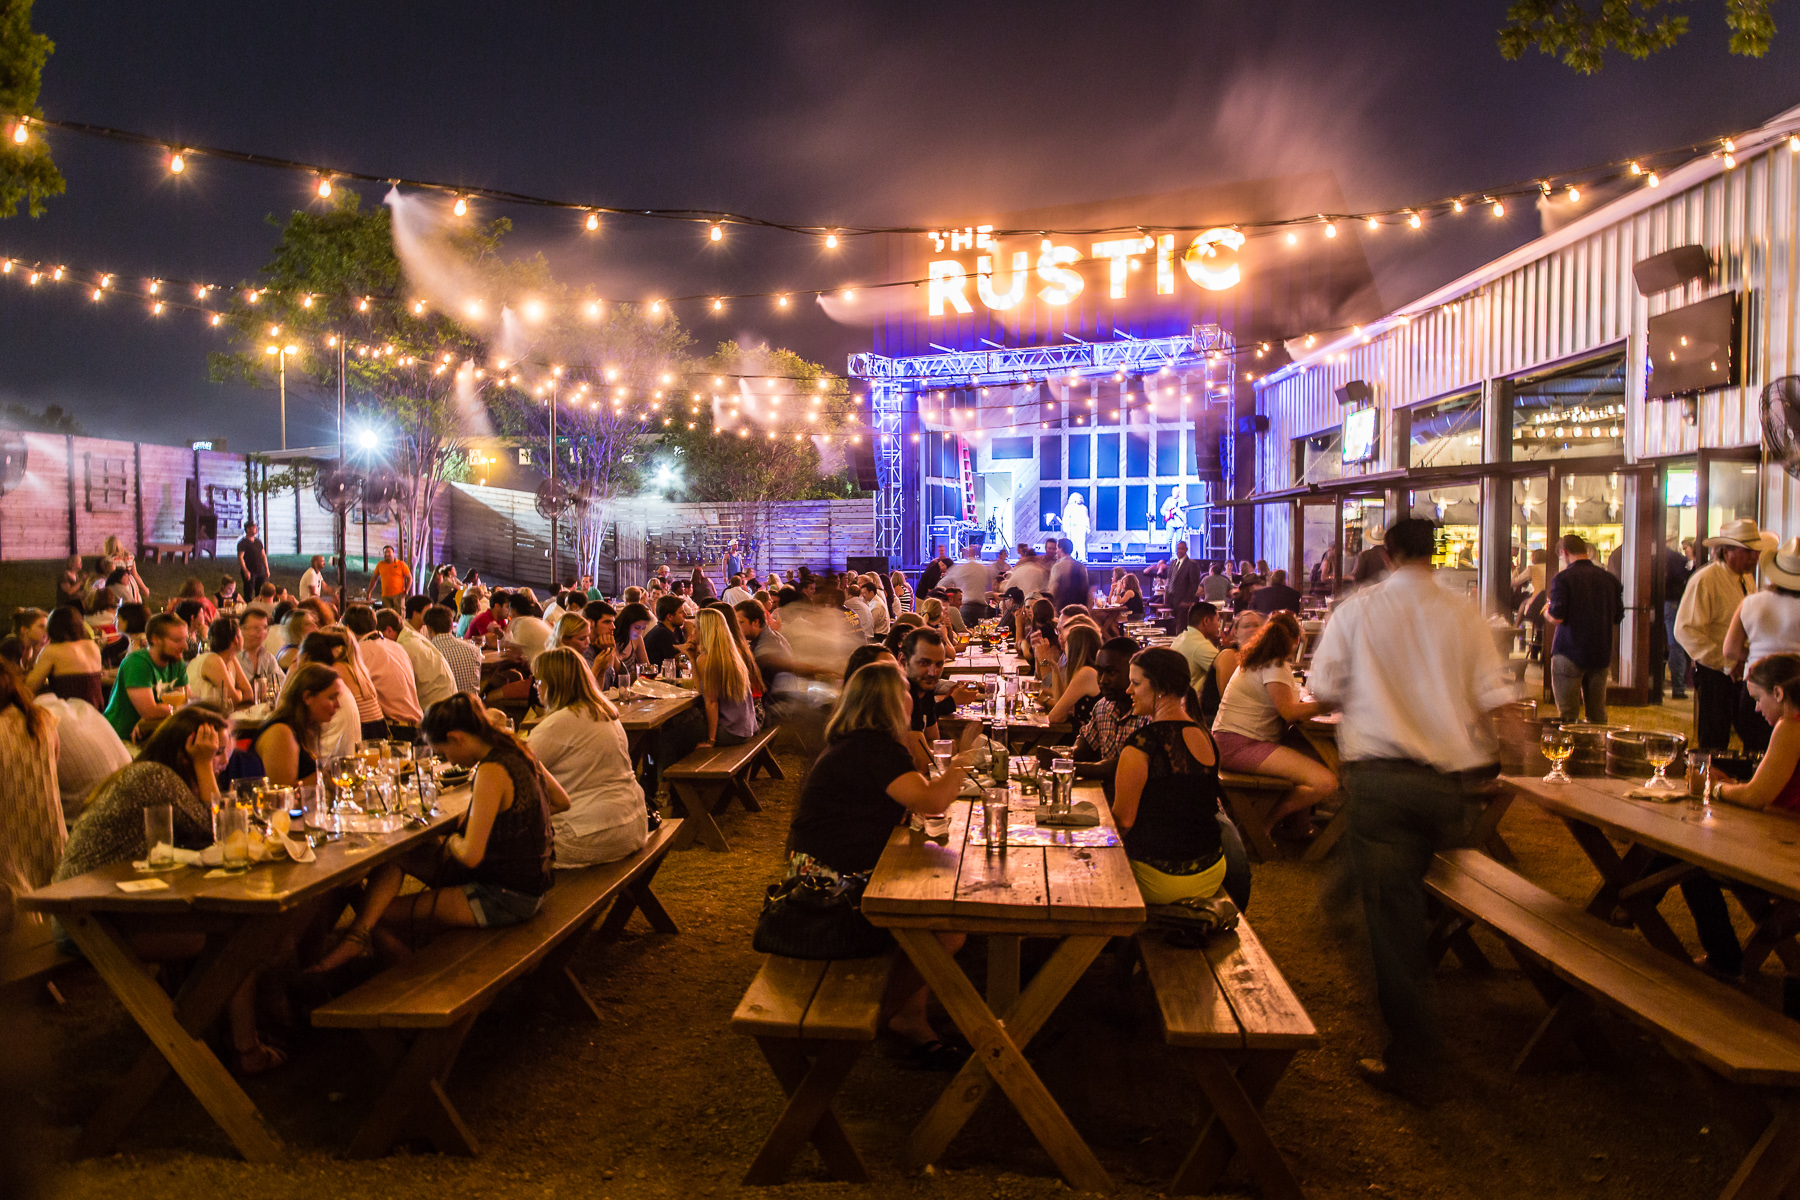 pat green's bar, restaurant & venue 'the rustic' opening in s.a.